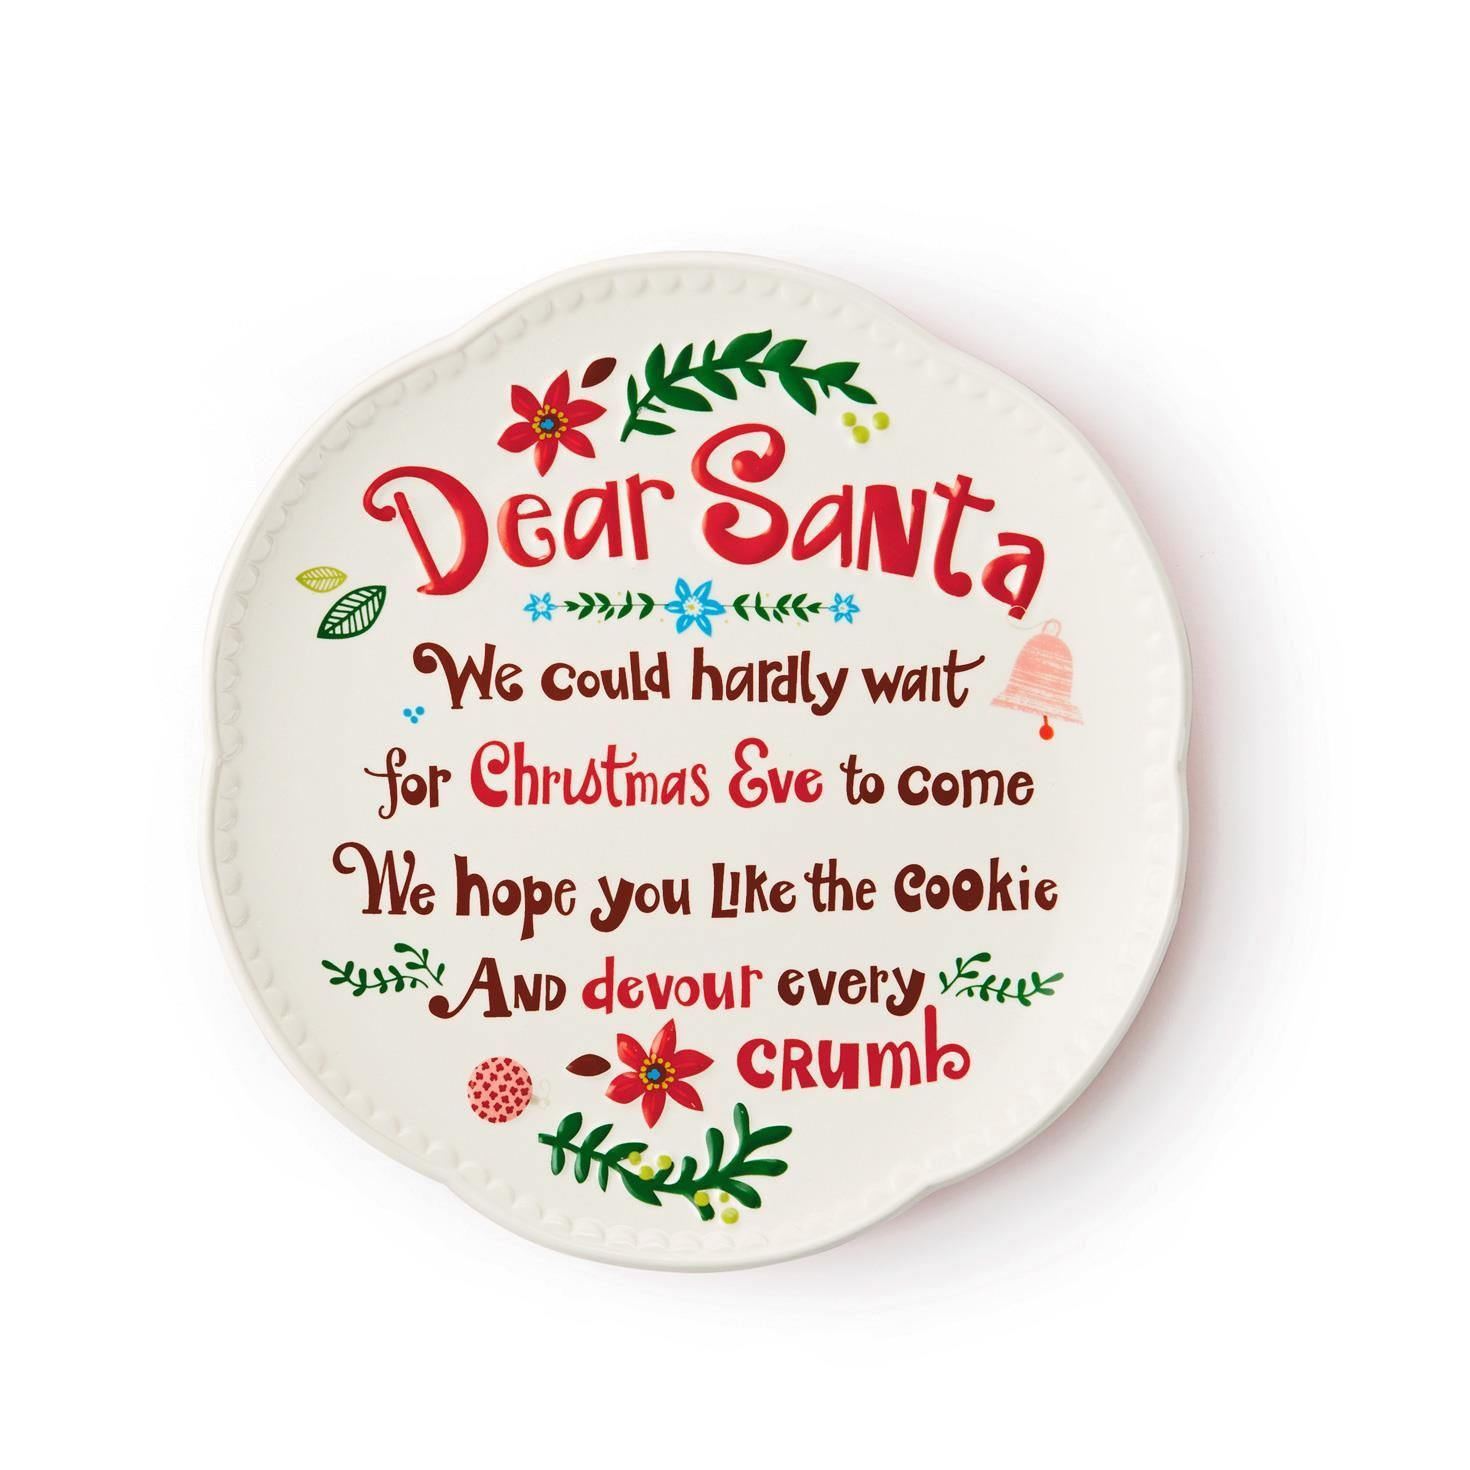 Dear Santa Cookie Plate